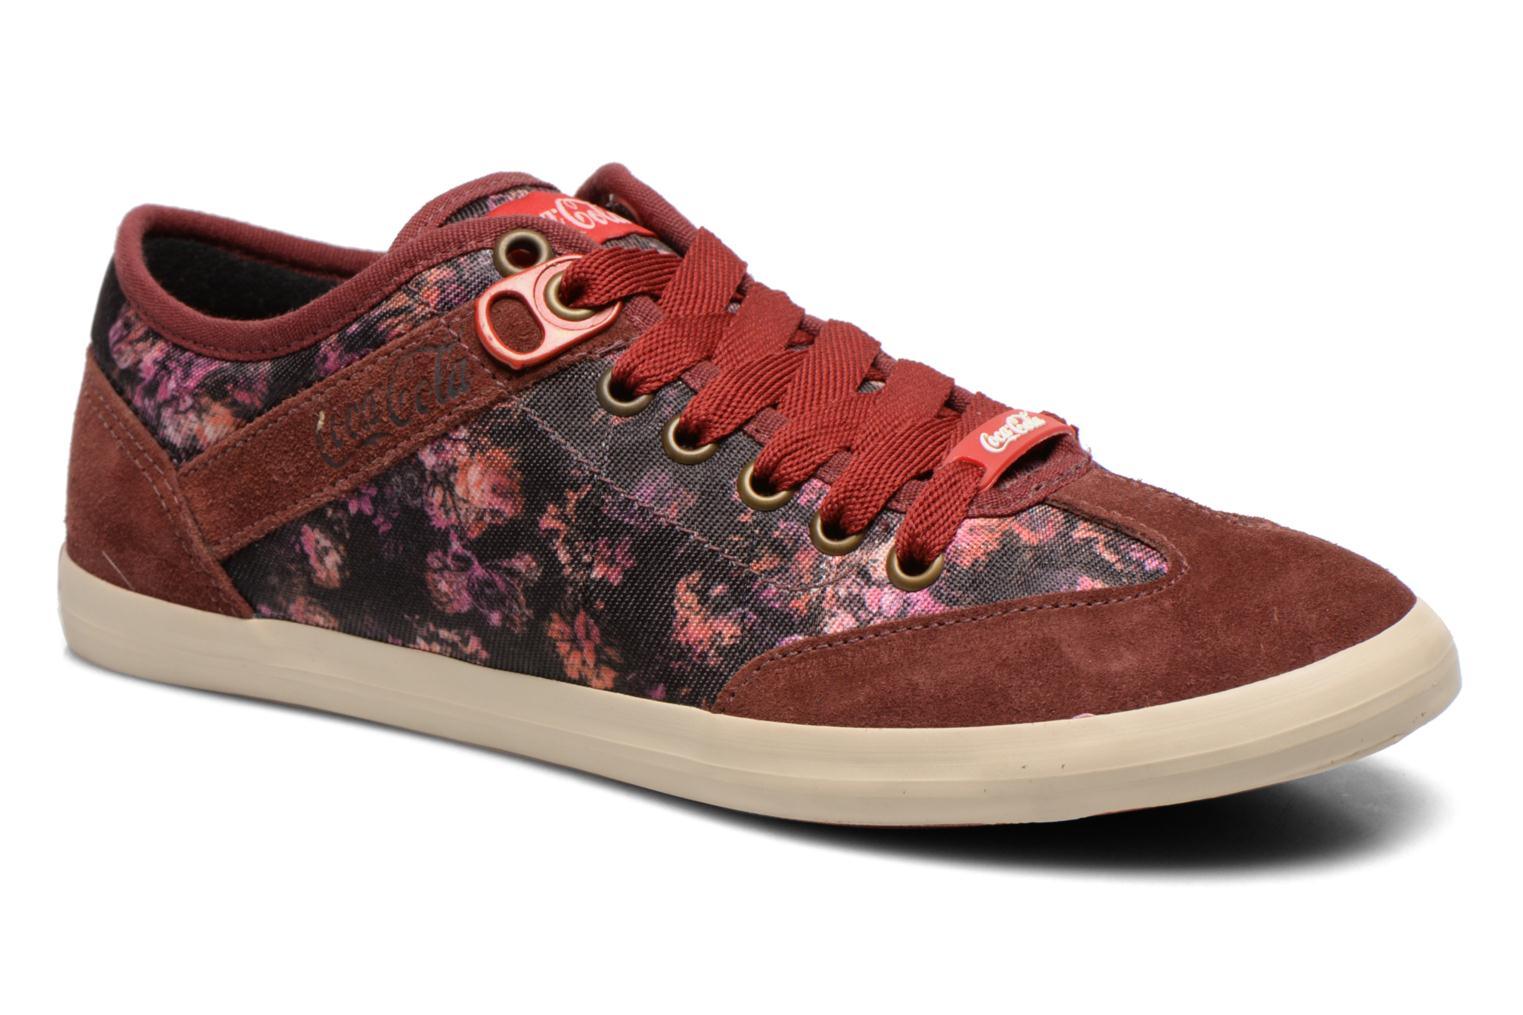 Montreal low print by Coca-cola shoes